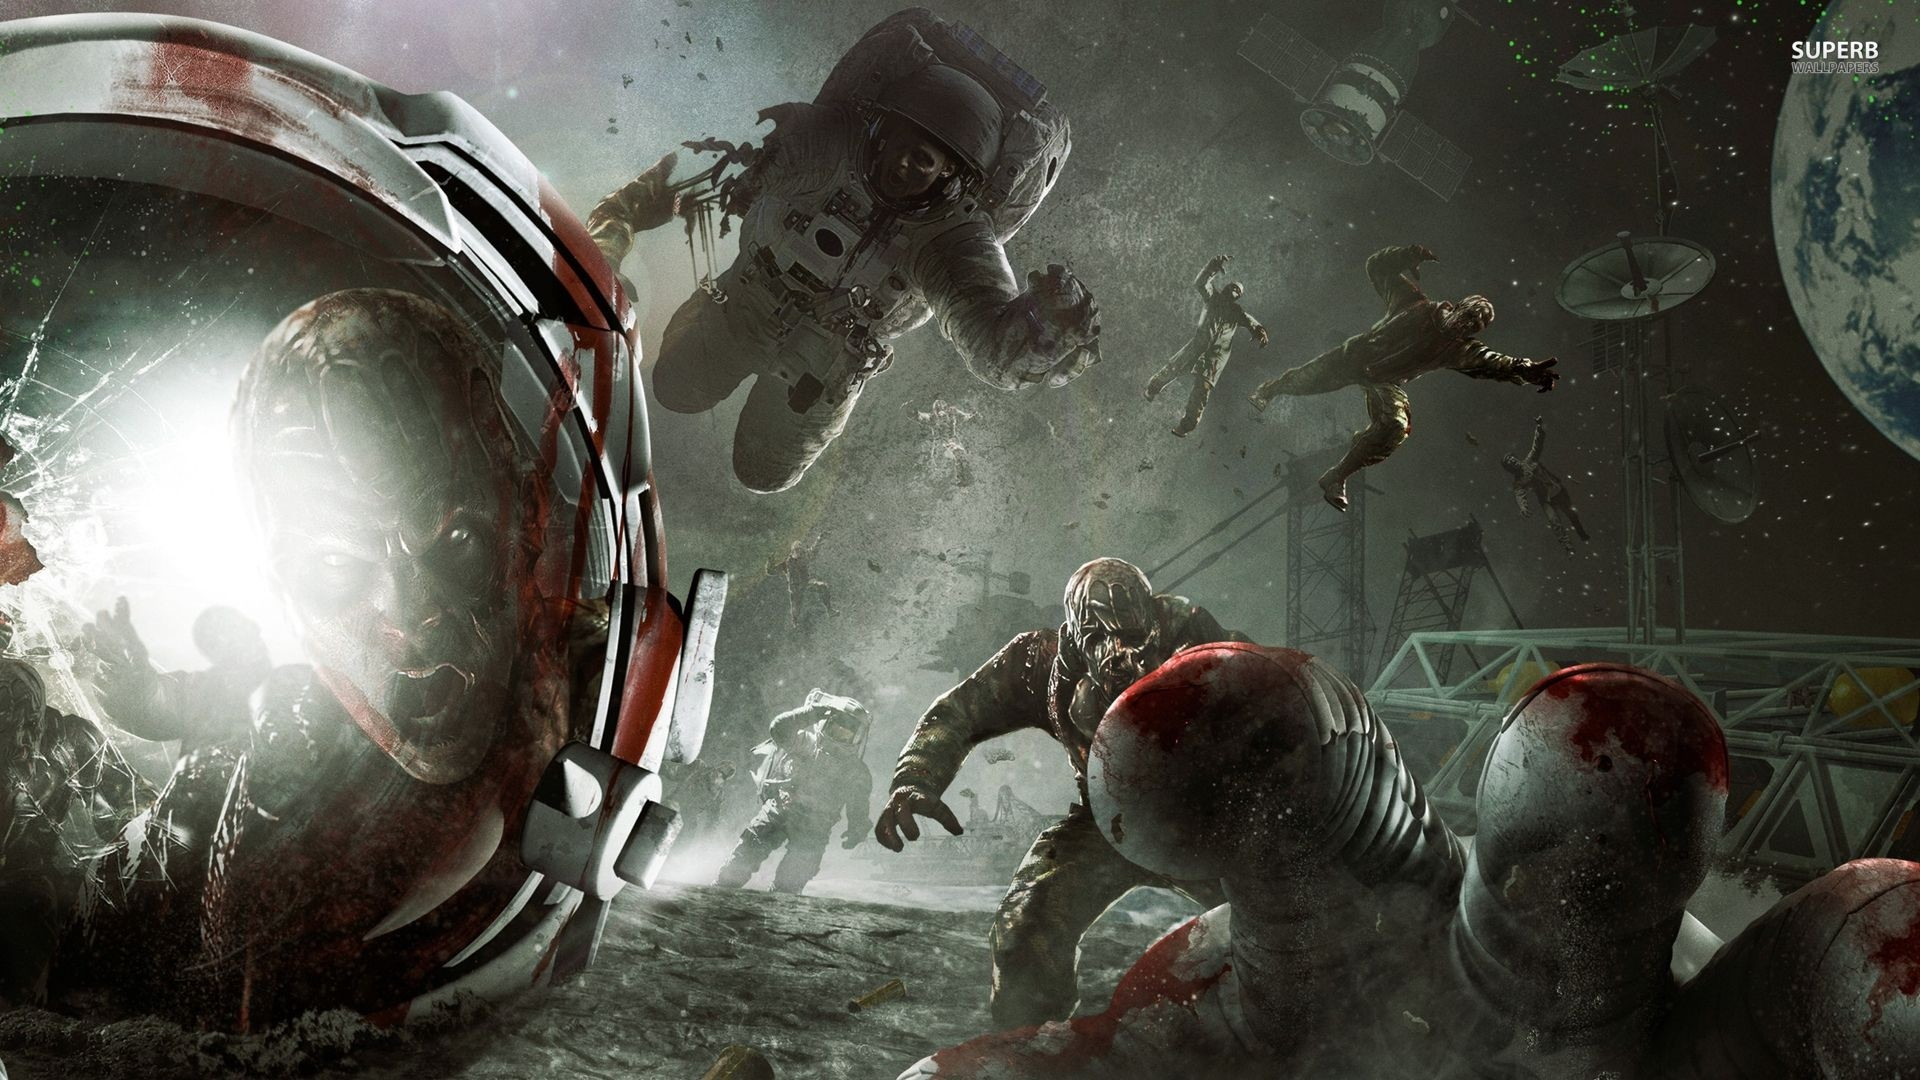 Res: 1920x1080, zombie animated wallpaper hd - Call of Duty World at War Zombies wallpaper  Game wallpapers